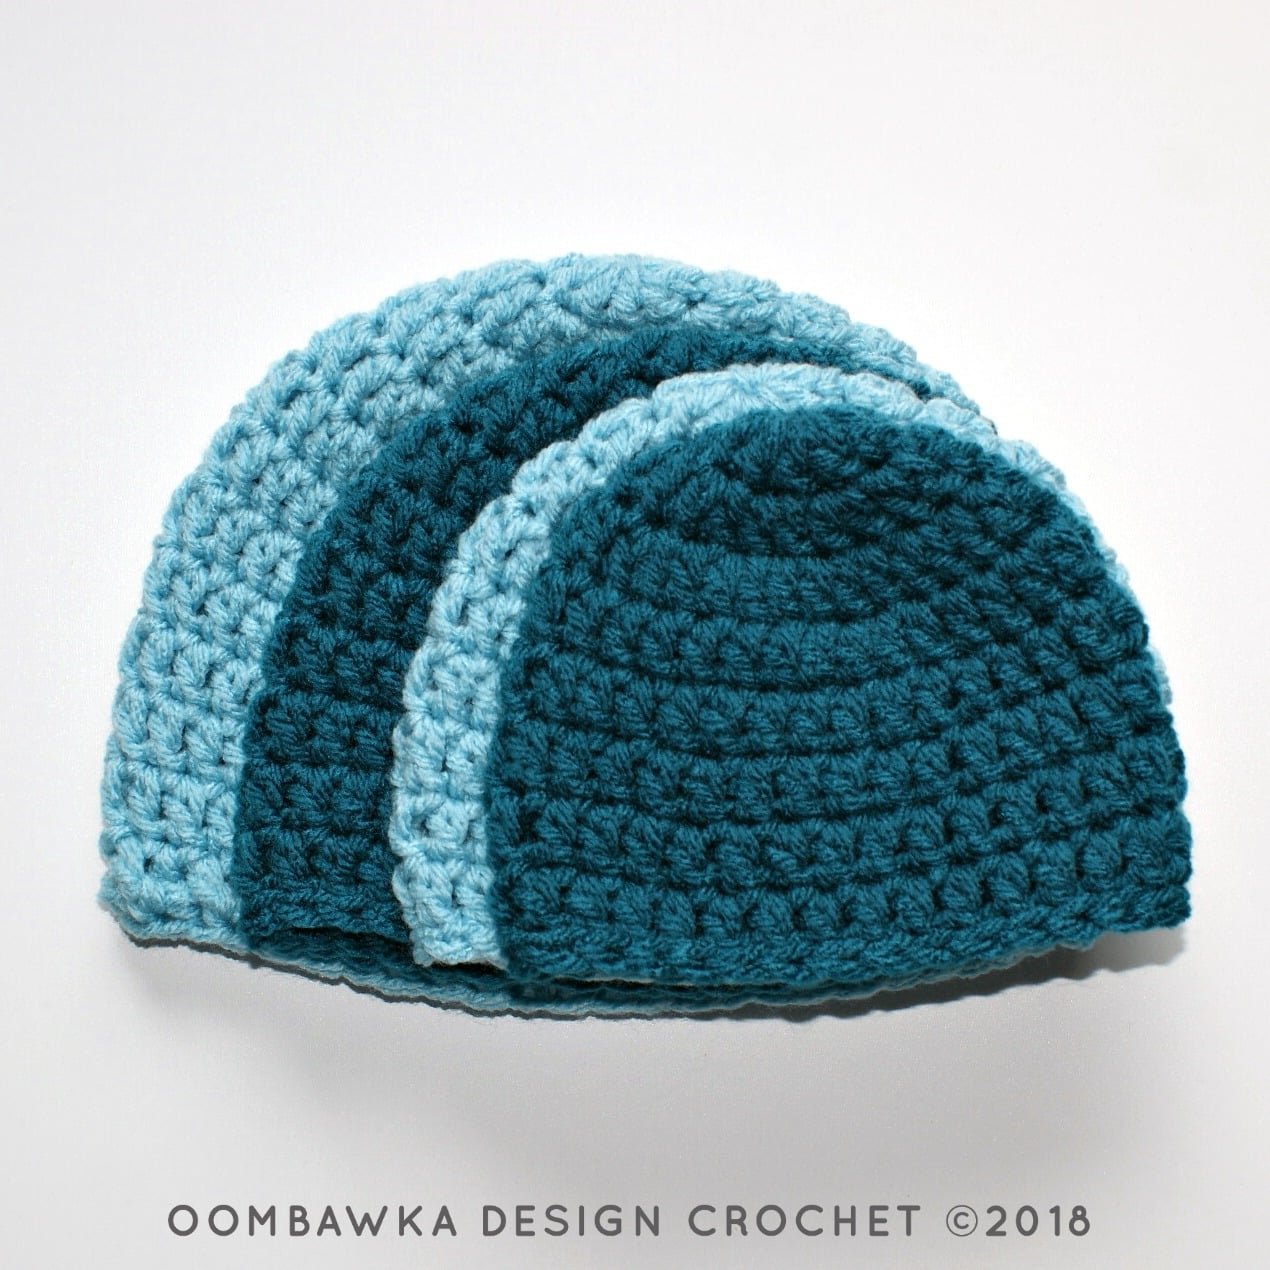 cf5fc63da8e Simple Double Crochet Hat Pattern. • Oombawka Design Crochet